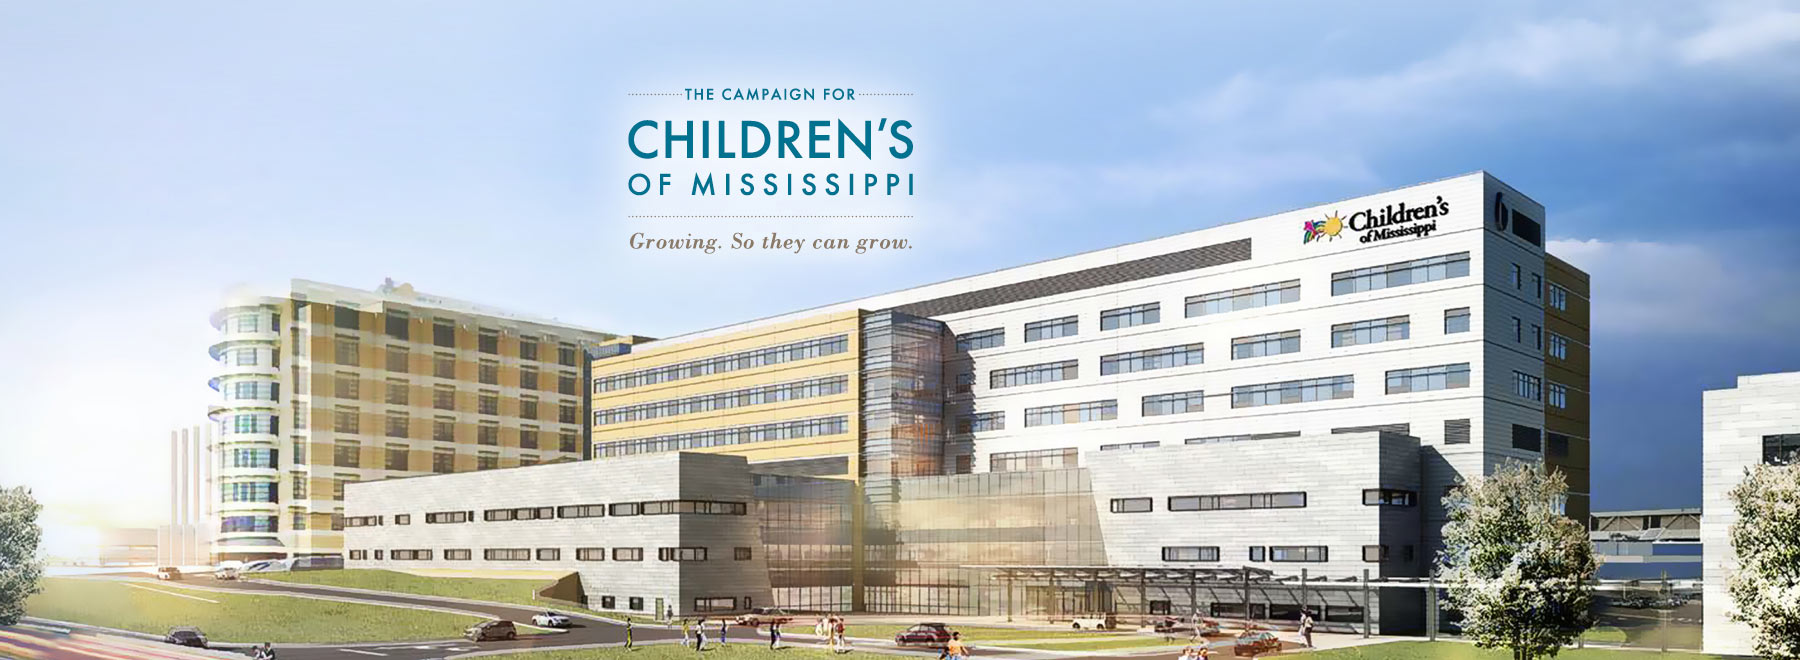 Our capital campaign will help expand the state's only hospital for children.